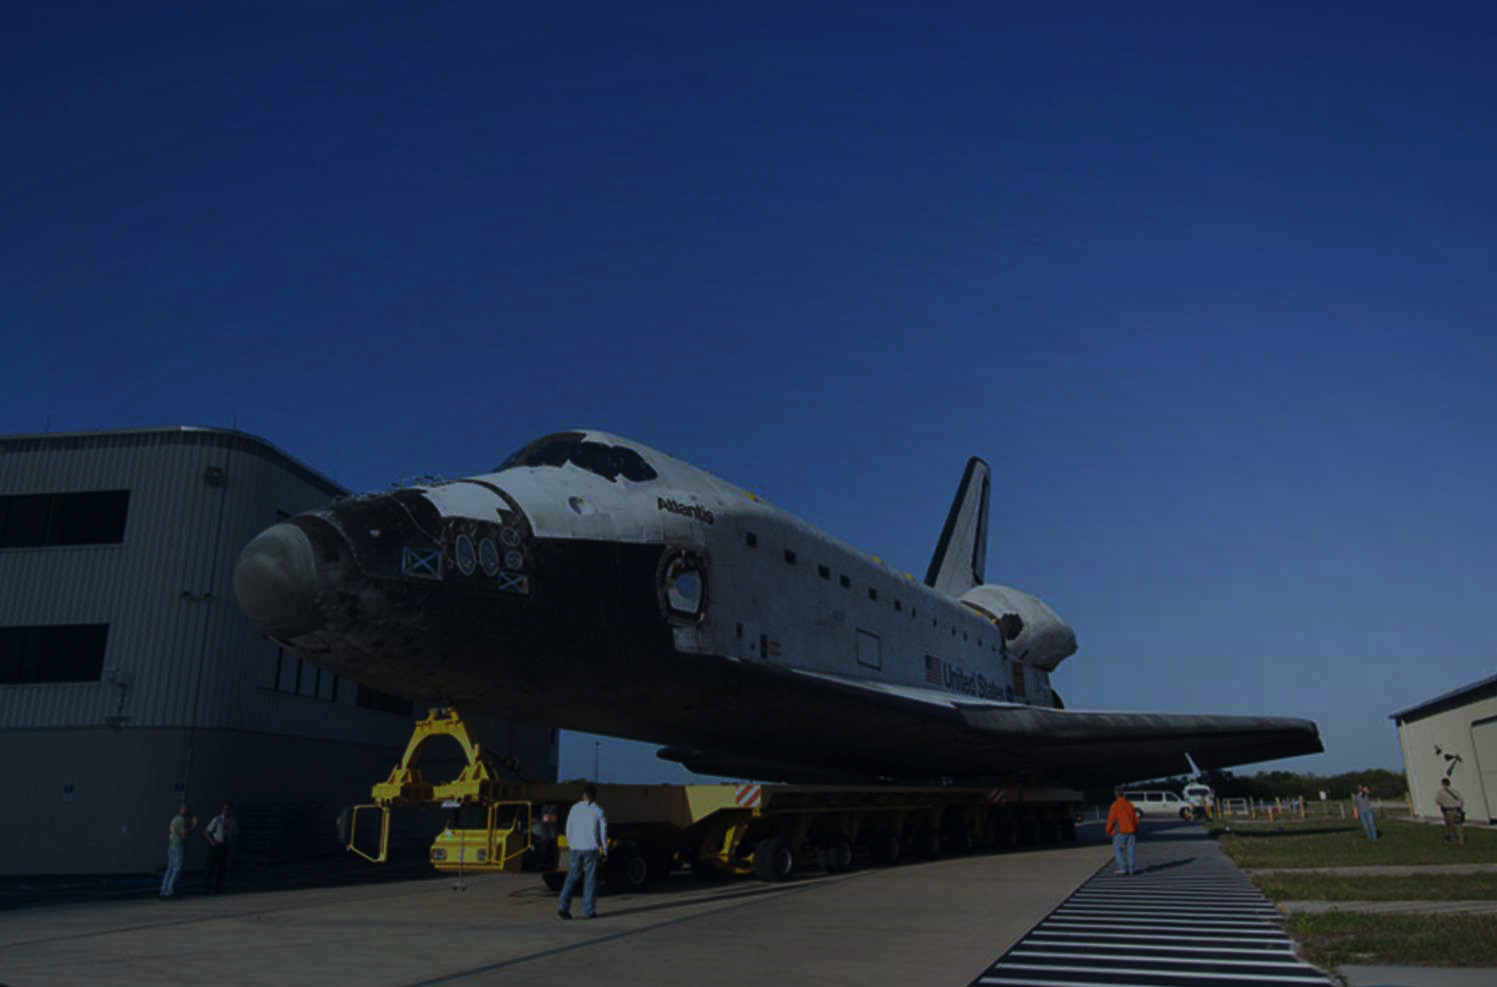 The Atlantis Space Shuttle being moved on some many wheeled customized vehicle.